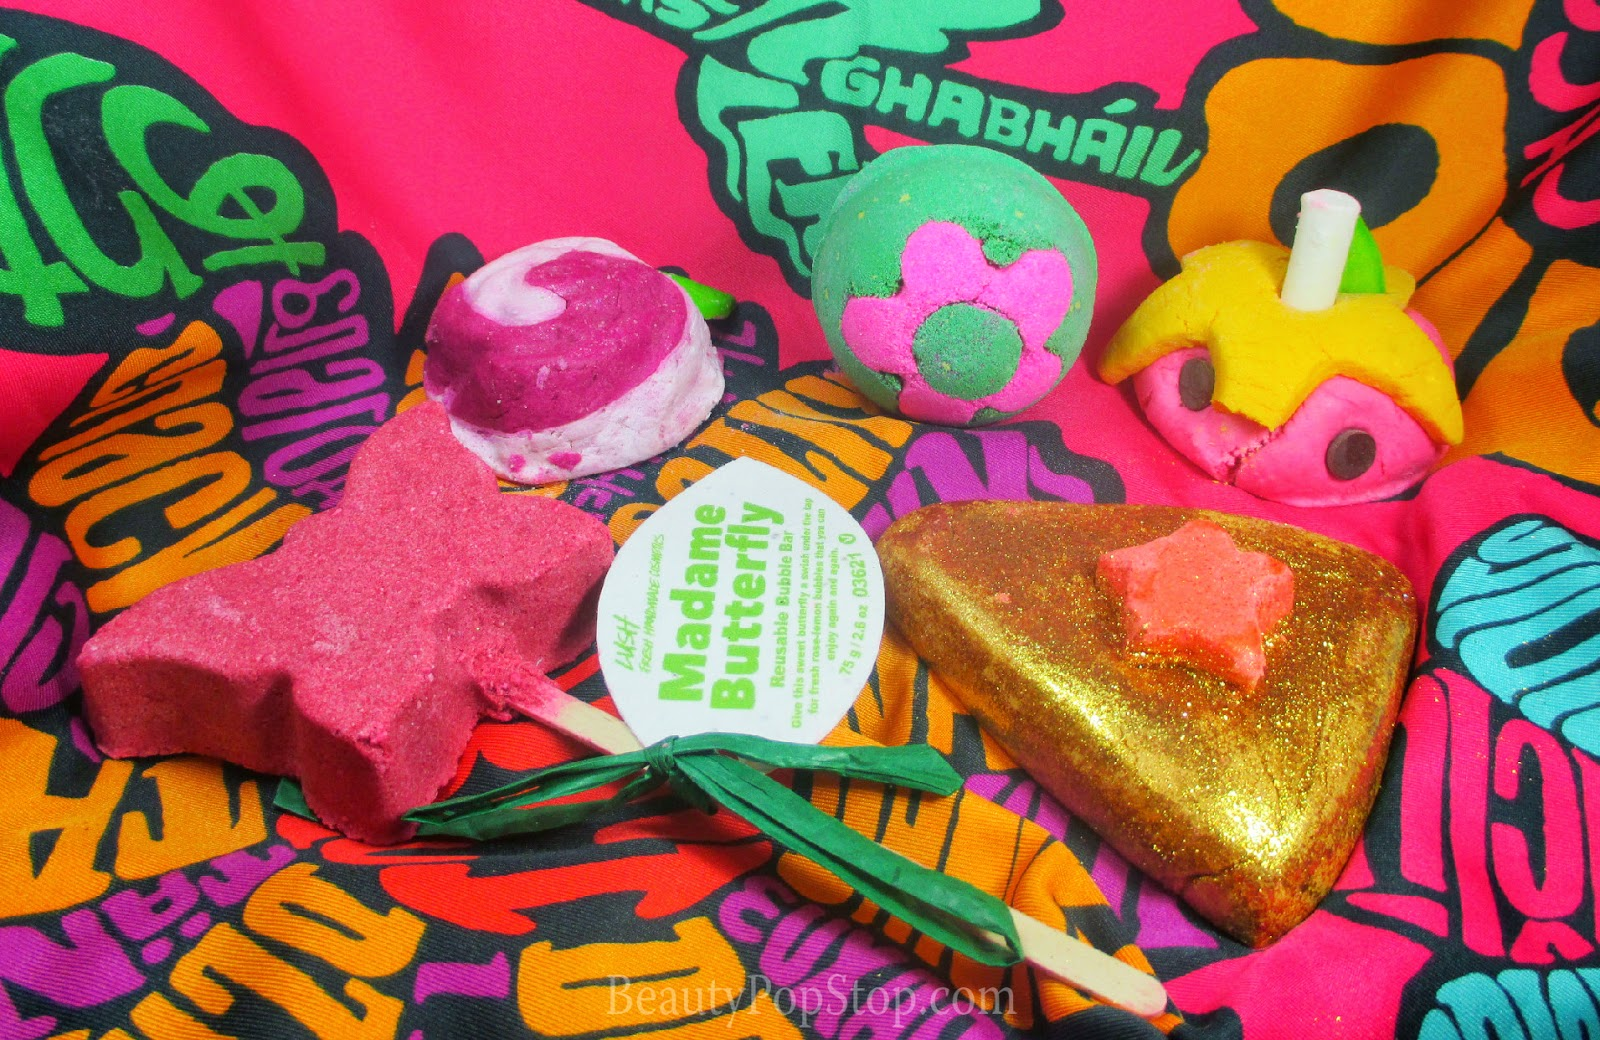 lush cosmetics mother's day 2014 collection review